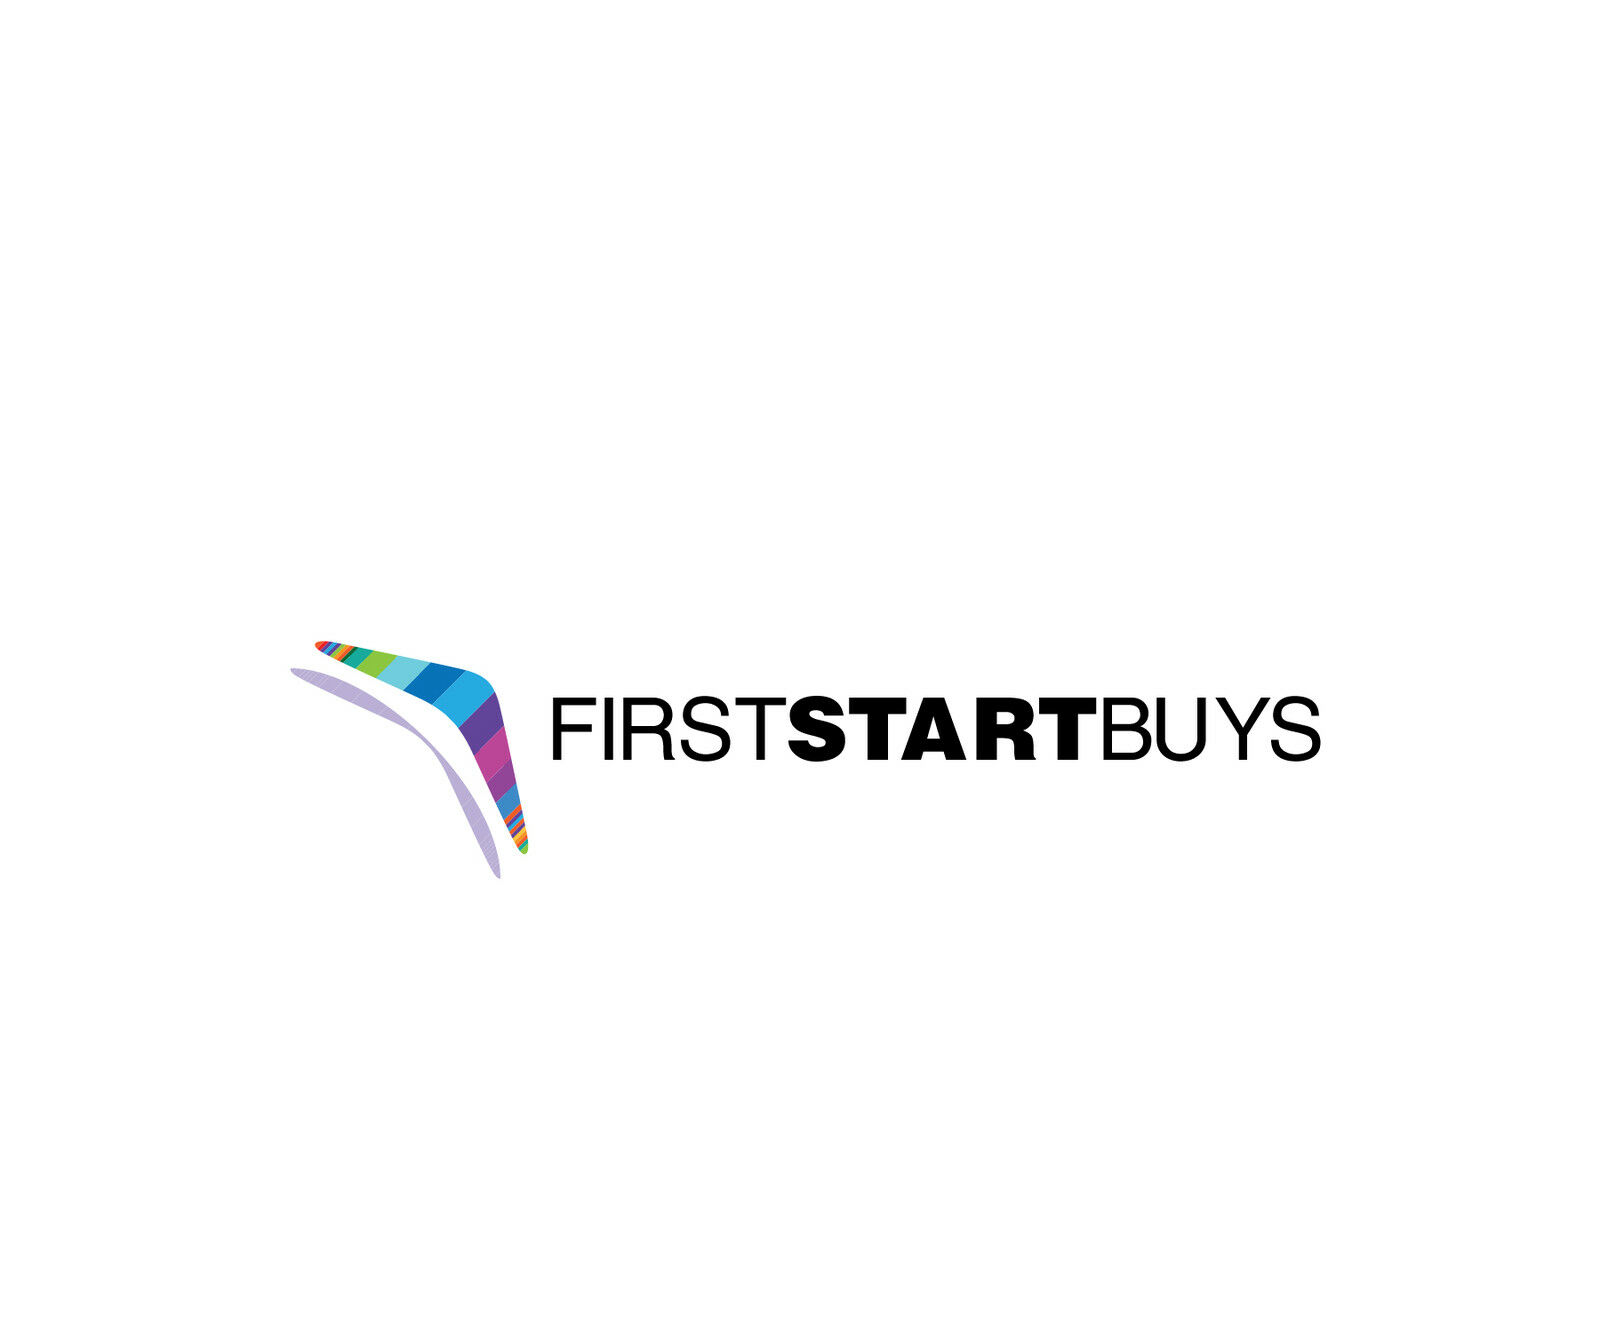 FirstStartBuys